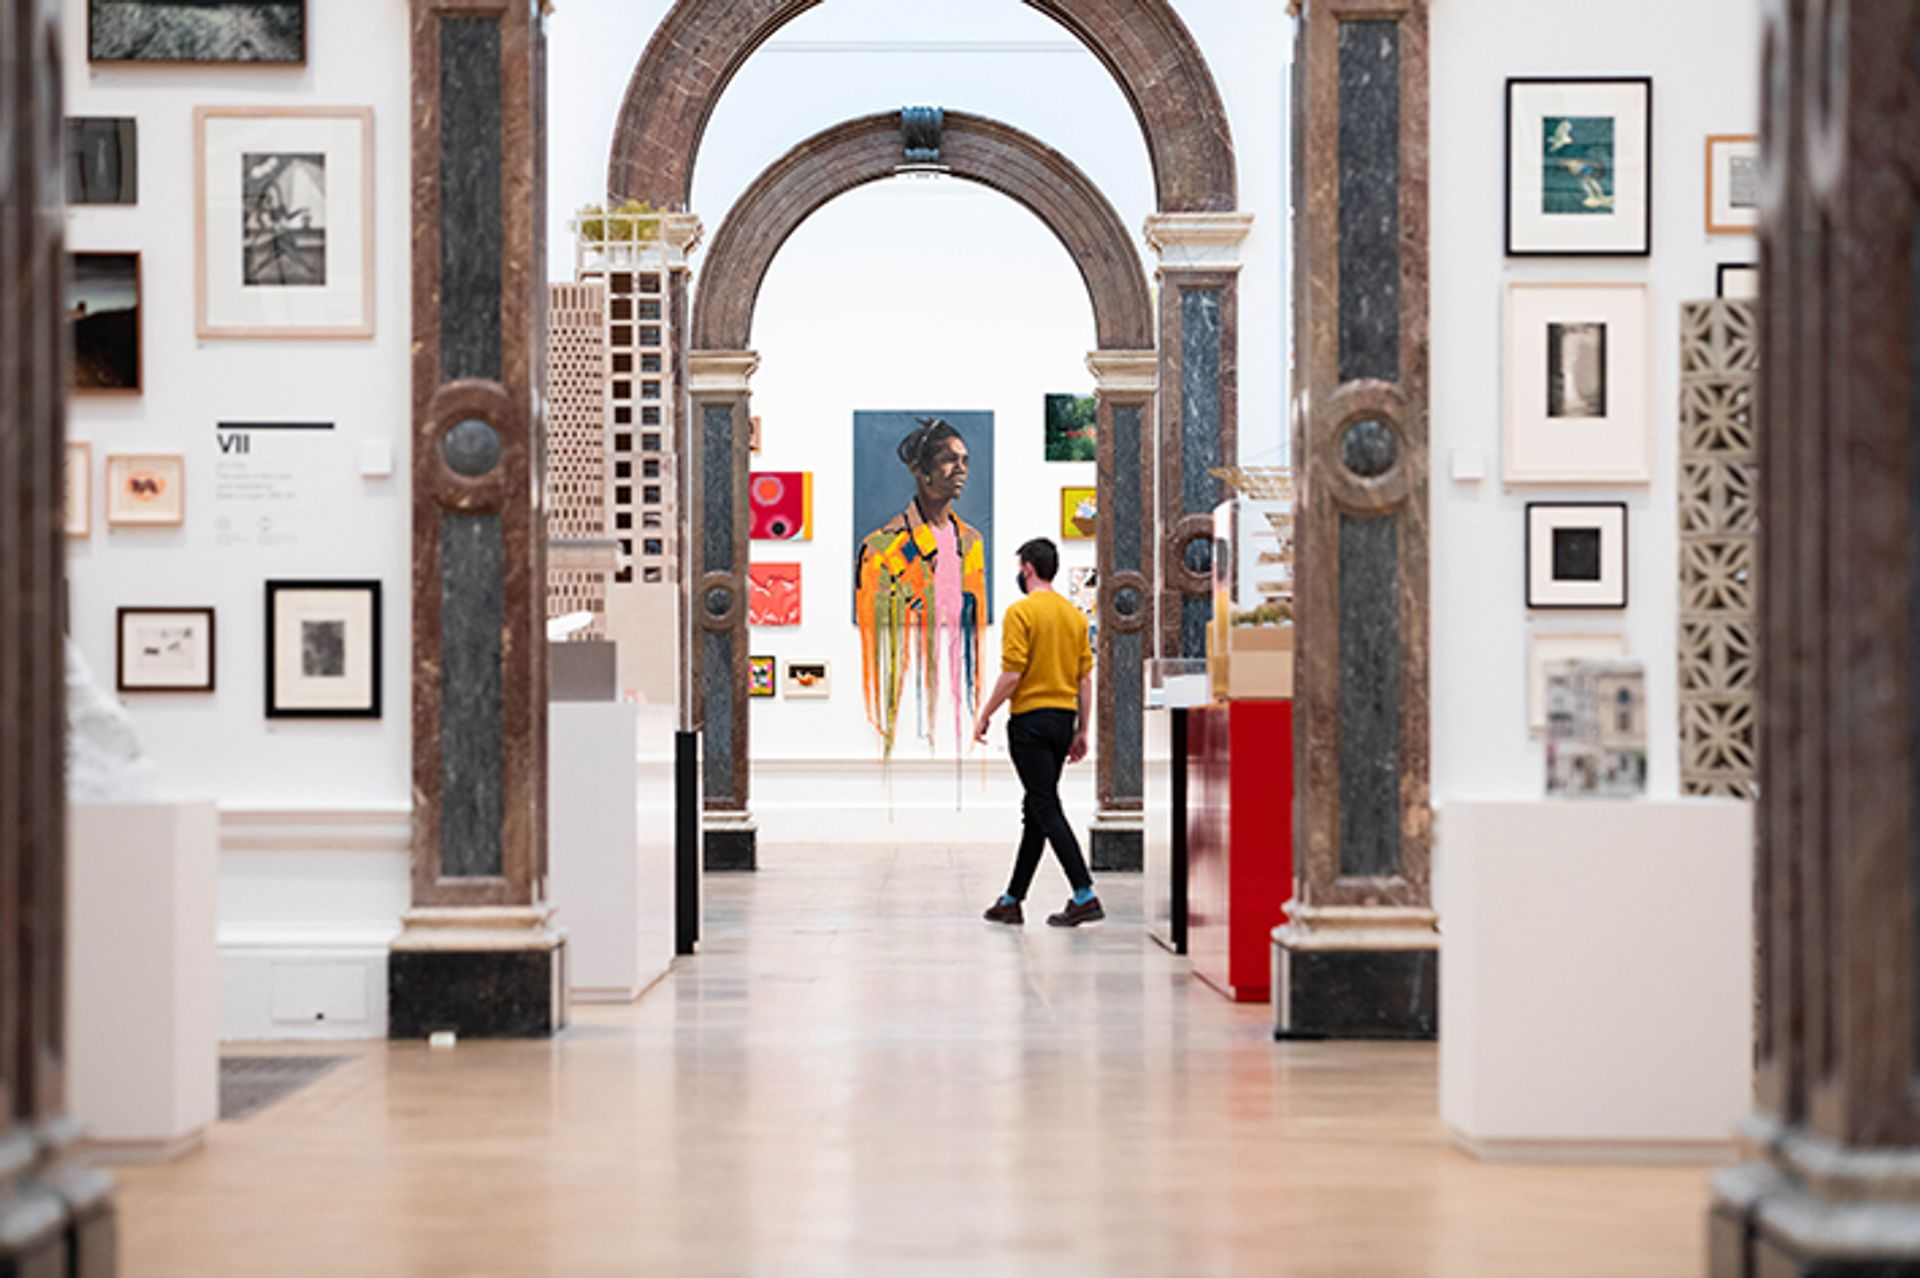 Installation view of the Royal Academy of Arts's Summer exhibition Photo: © Royal Academy of Arts / David Parry